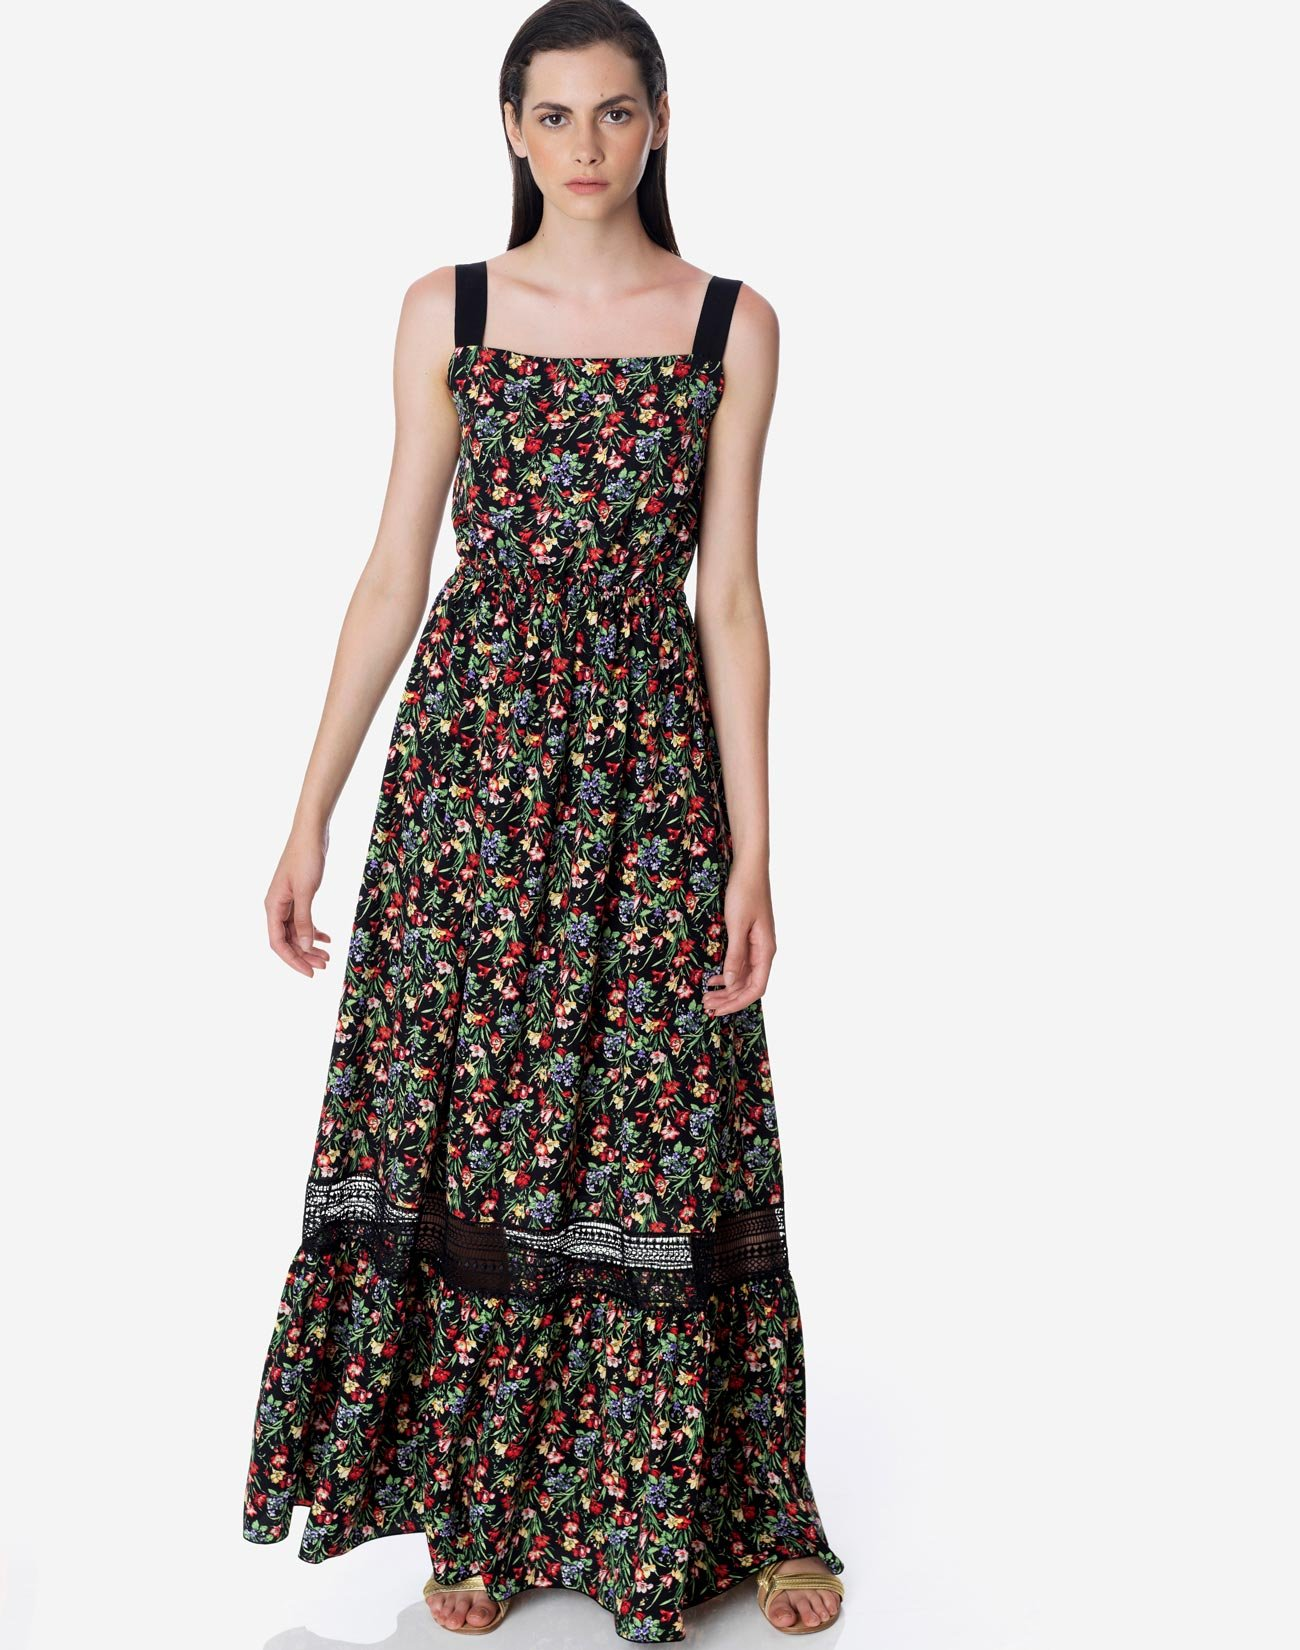 Printed maxi dress with bow